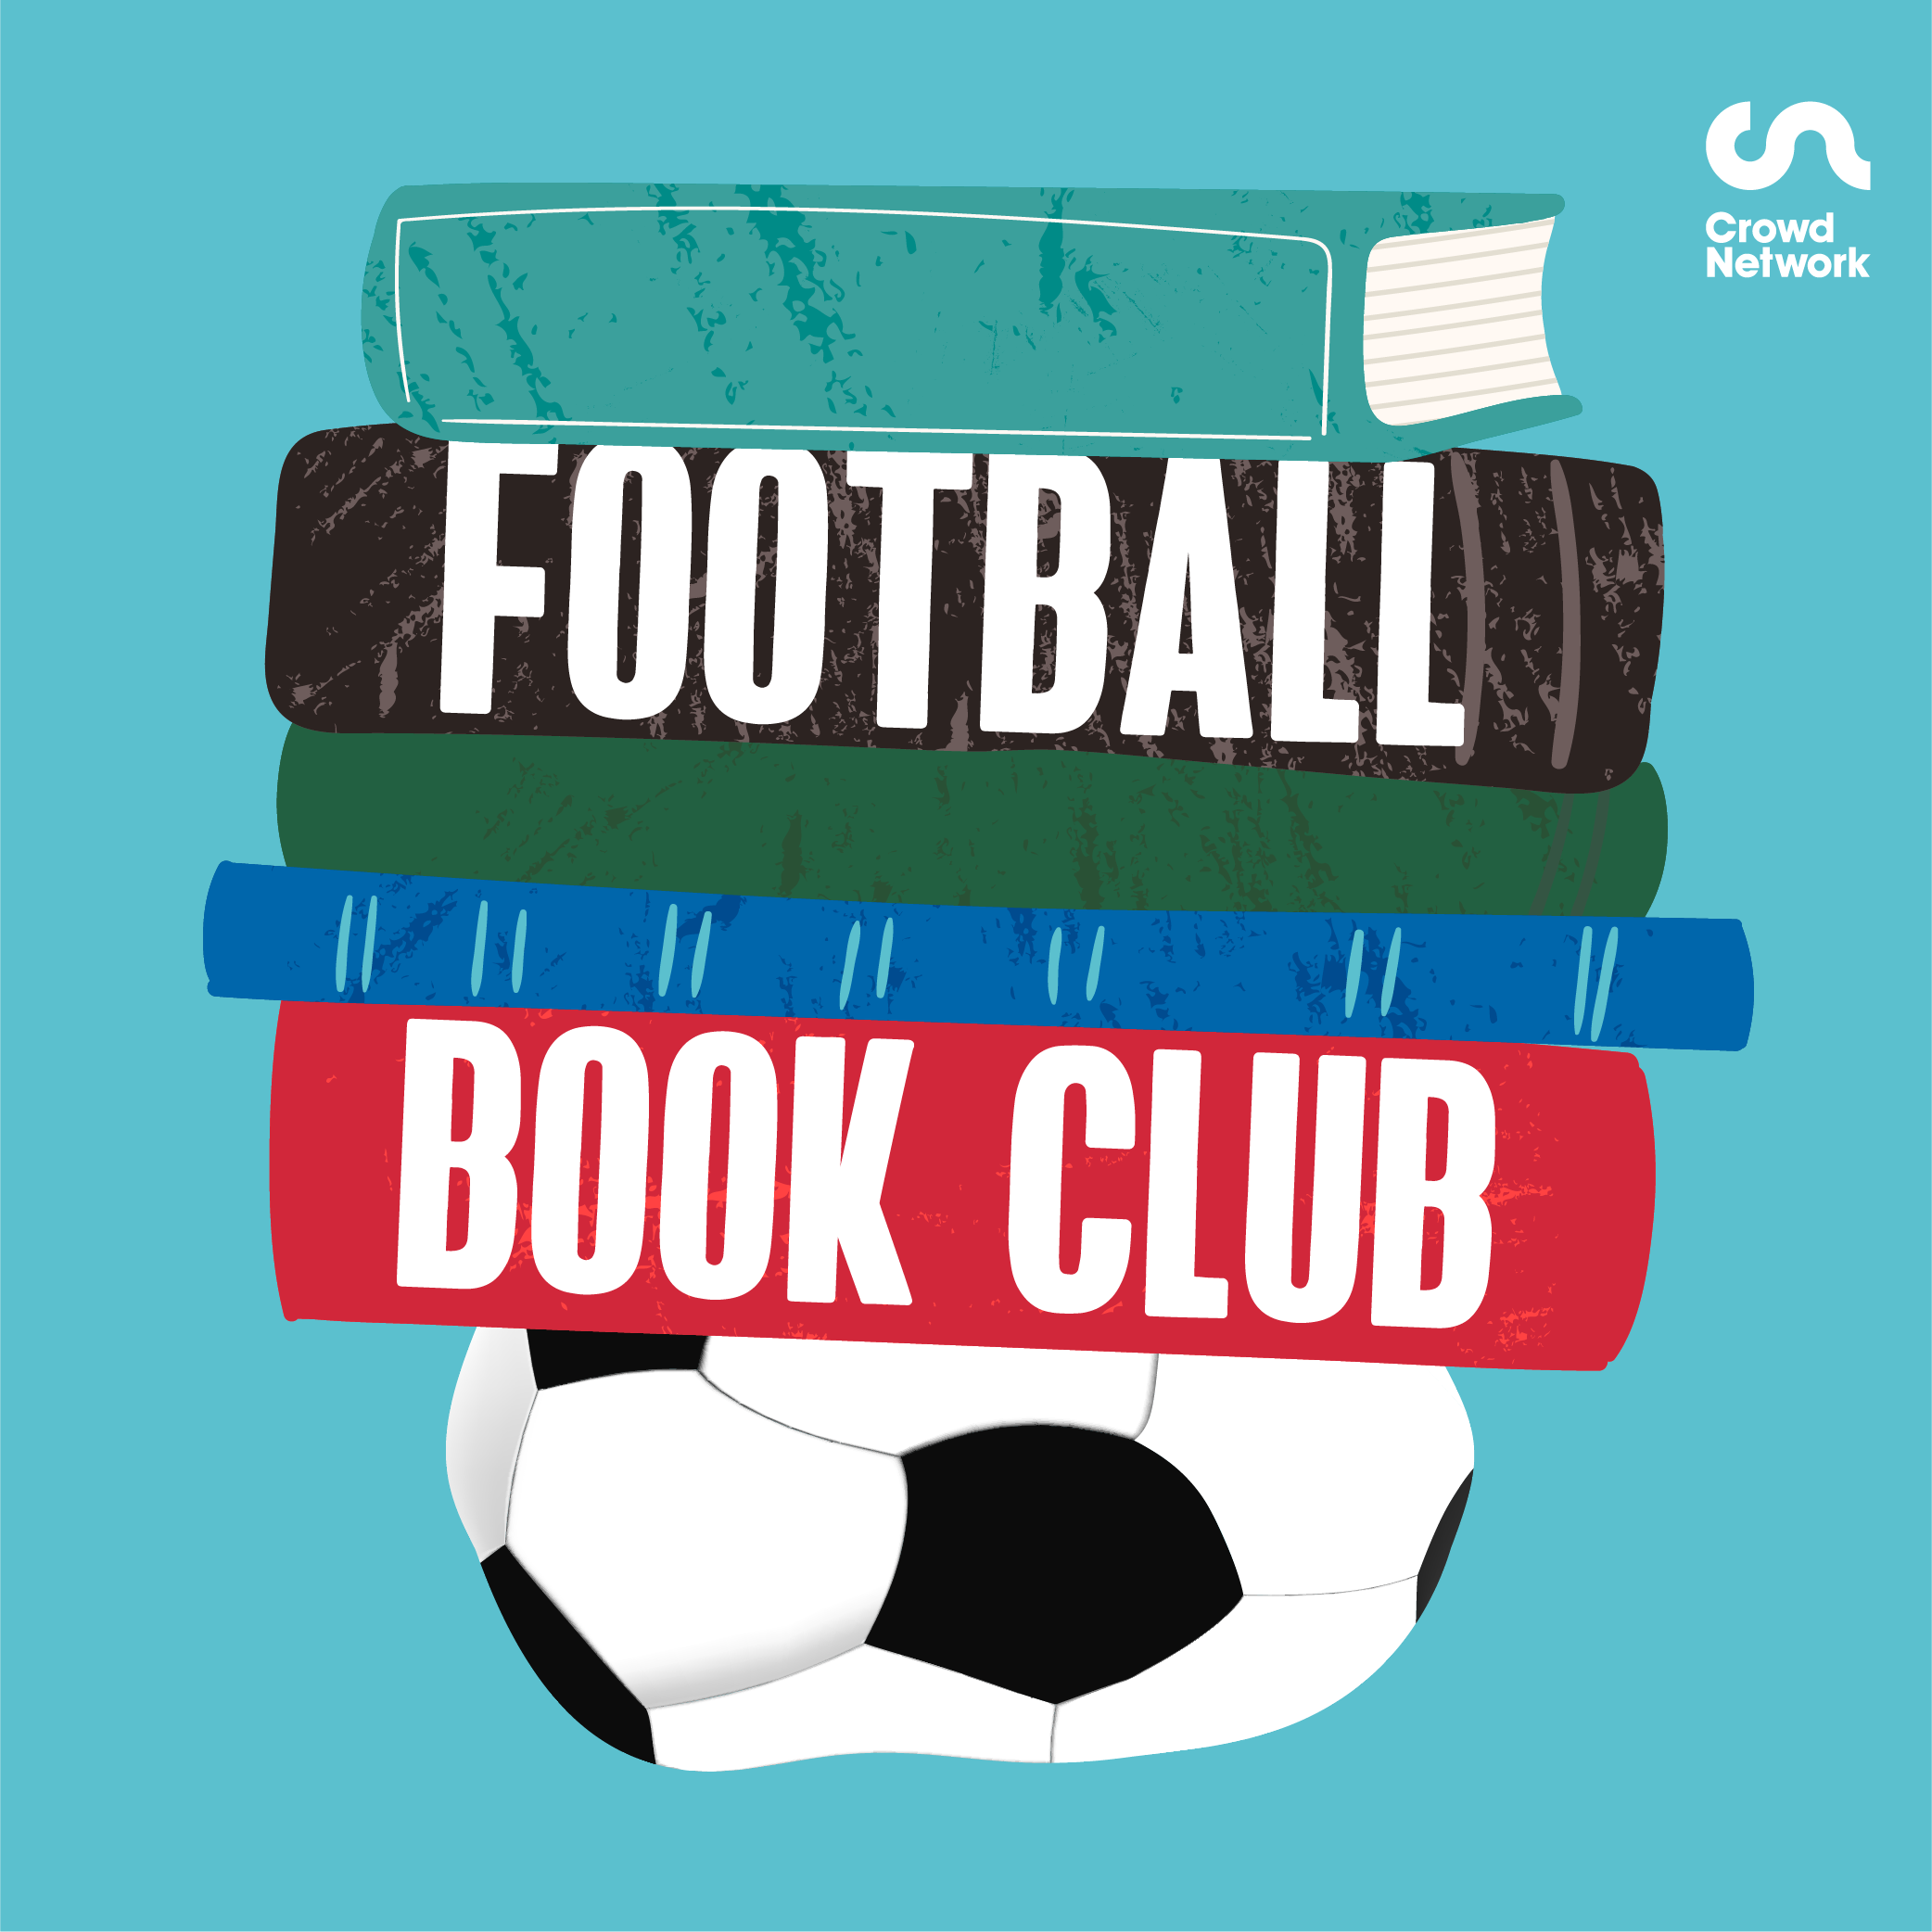 Football Book Club